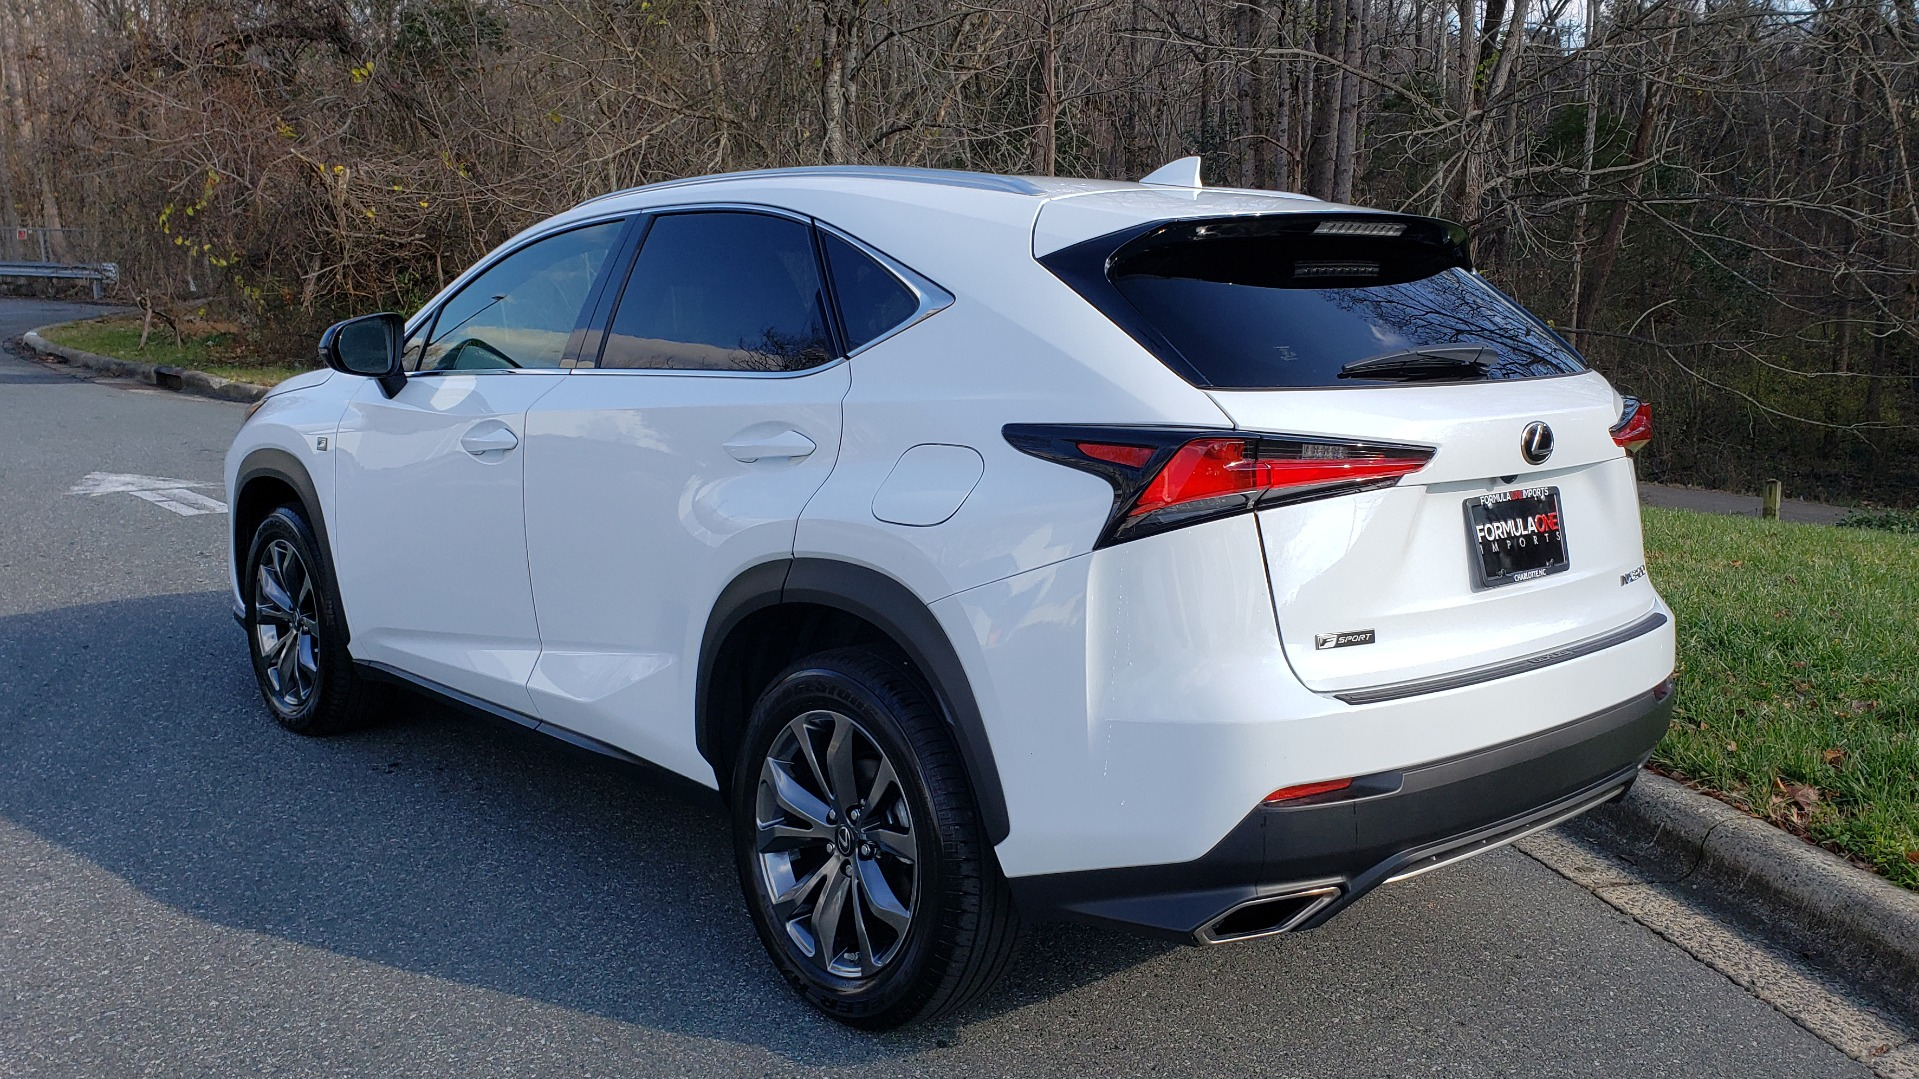 Used 2019 Lexus NX 300 F-SPORT / 2.0L TURBO / LEATHER / 18IN WHEELS / REARVIEW for sale Sold at Formula Imports in Charlotte NC 28227 3